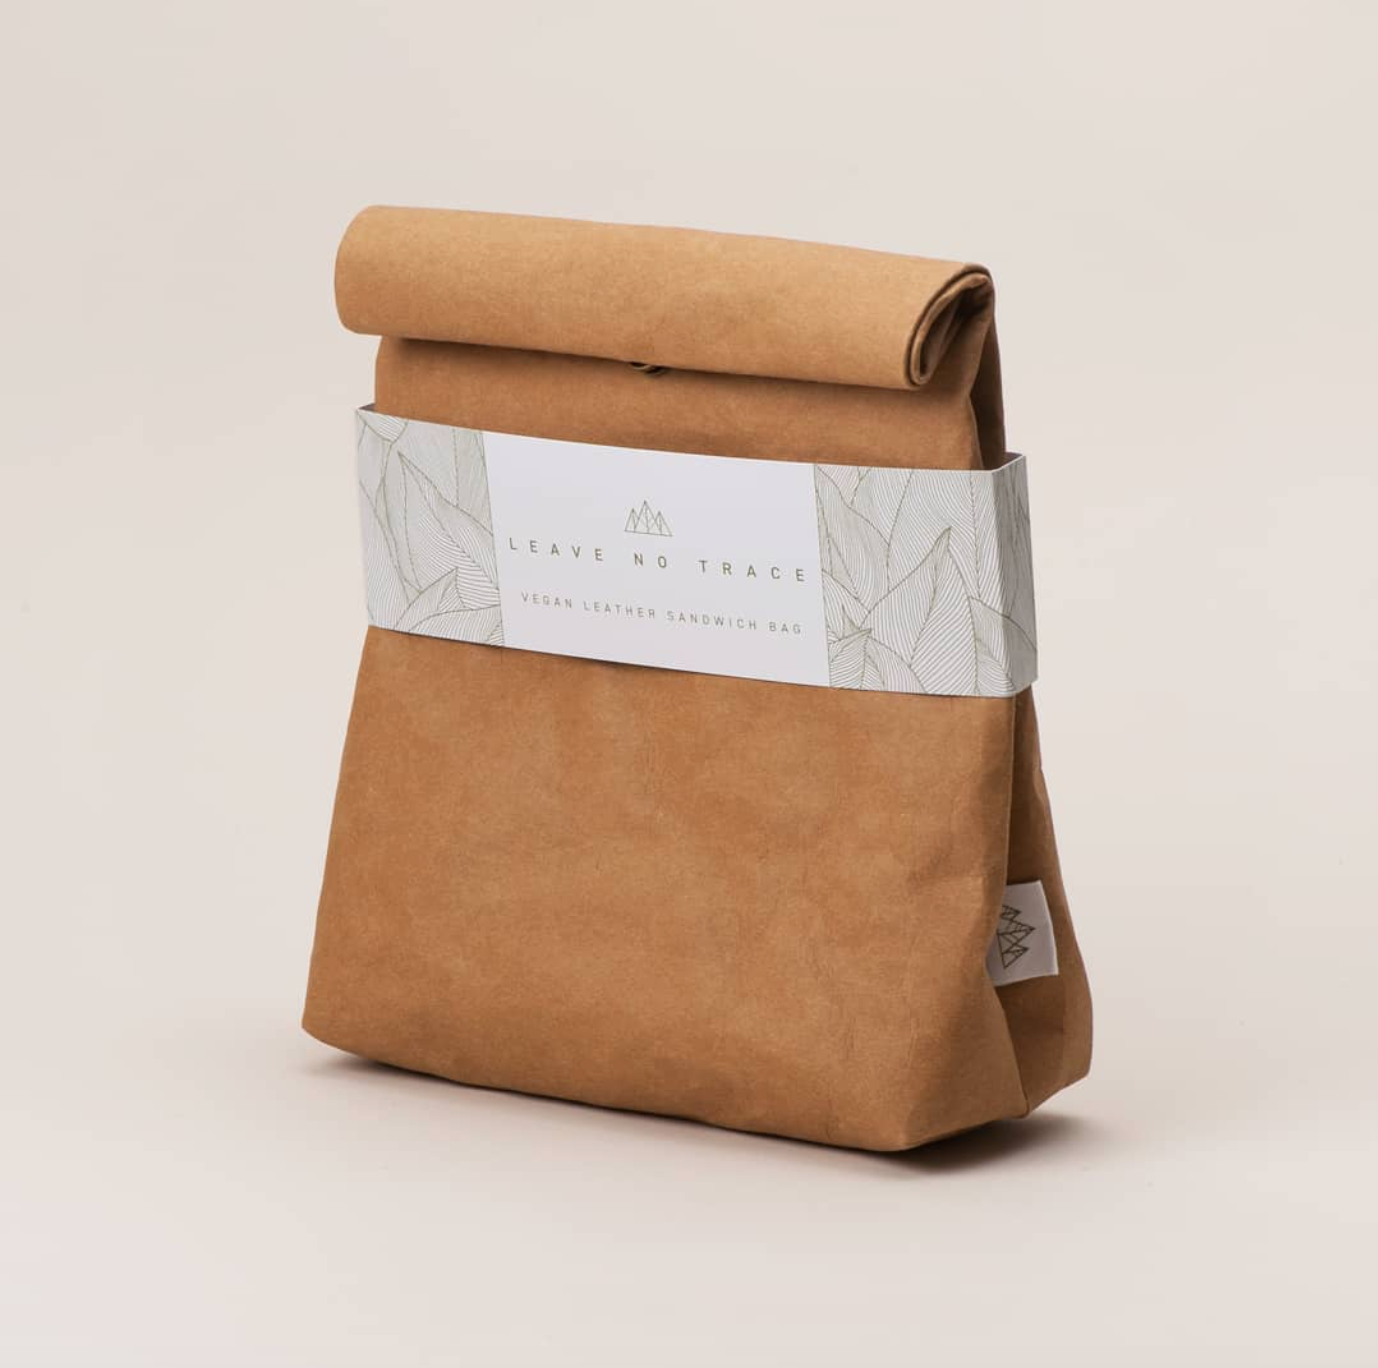 Leave No Trace fake leather lunch bag